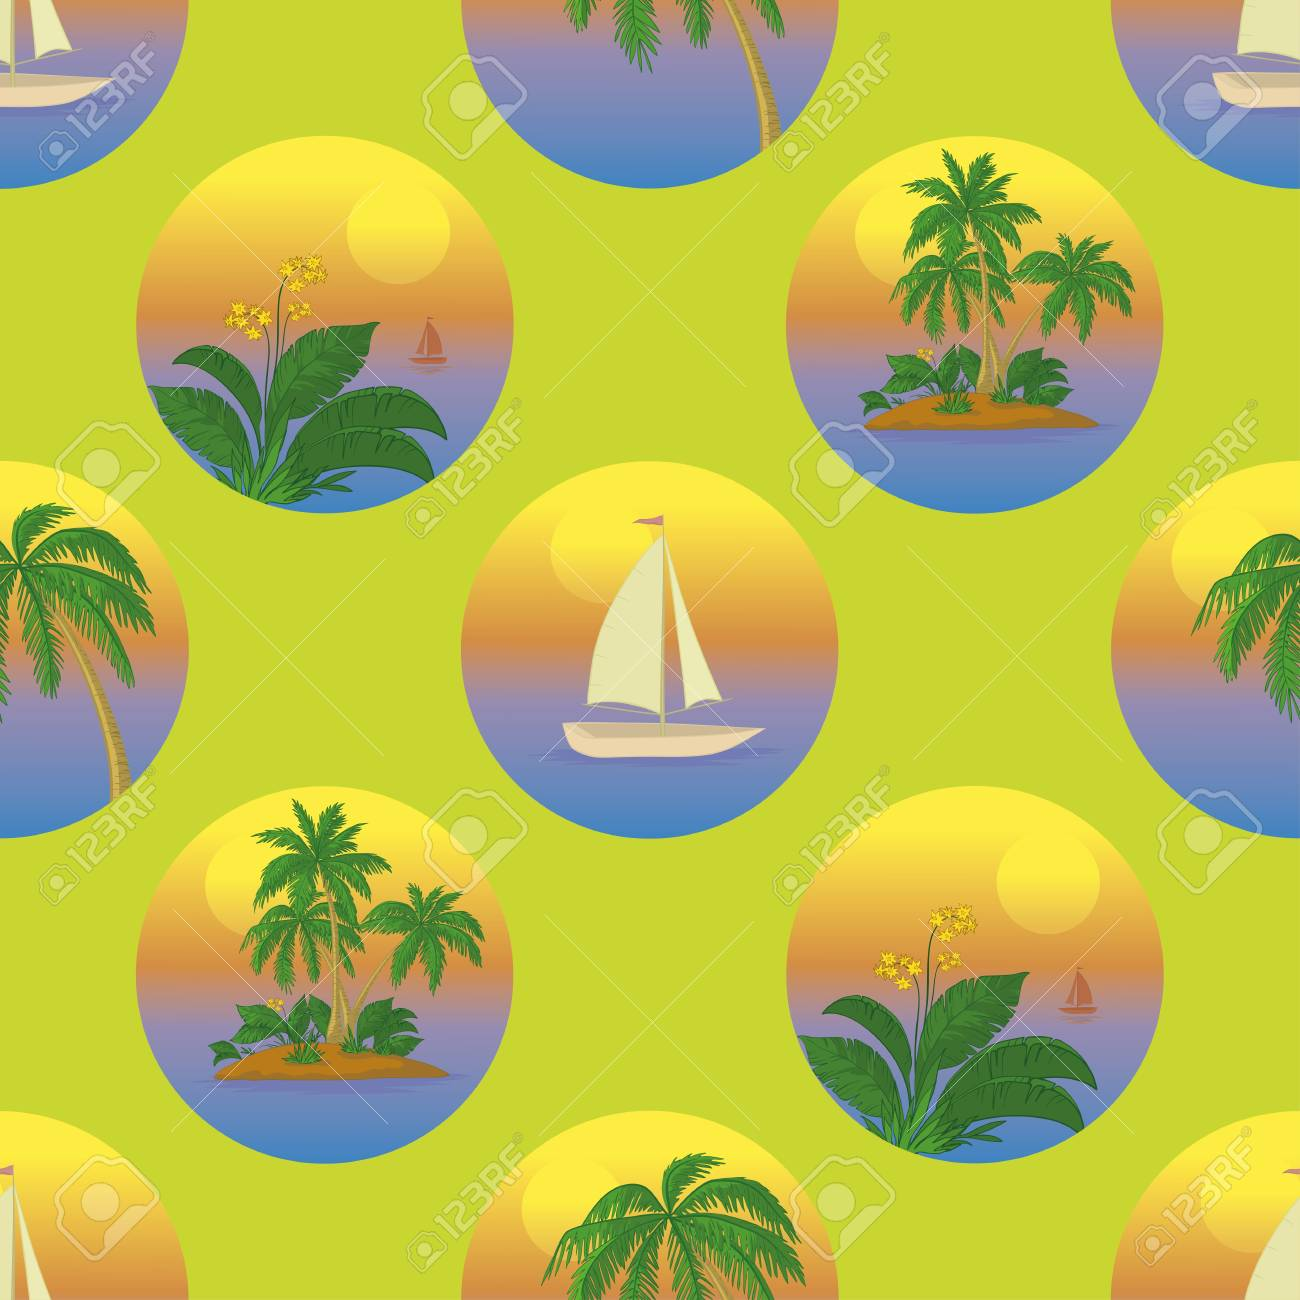 Seamless tropical background with a sailboat at sea, palms and flowers  illustration Stock Vector - 14510756